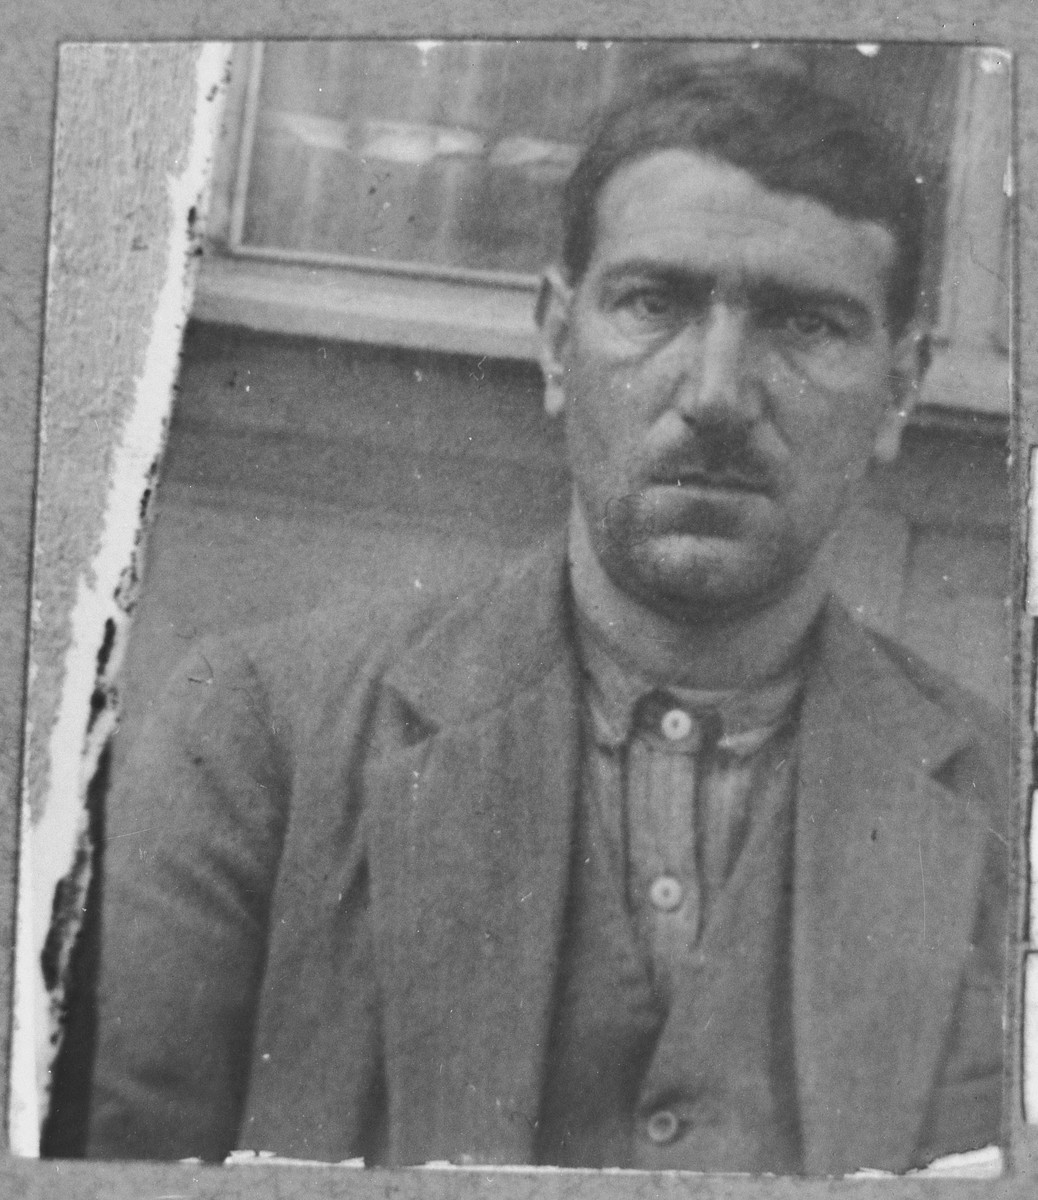 Portrait of Bohor Hasson, son of David Hasson.  He was a sackmaker.  He lived on Zmayeva in Bitola.